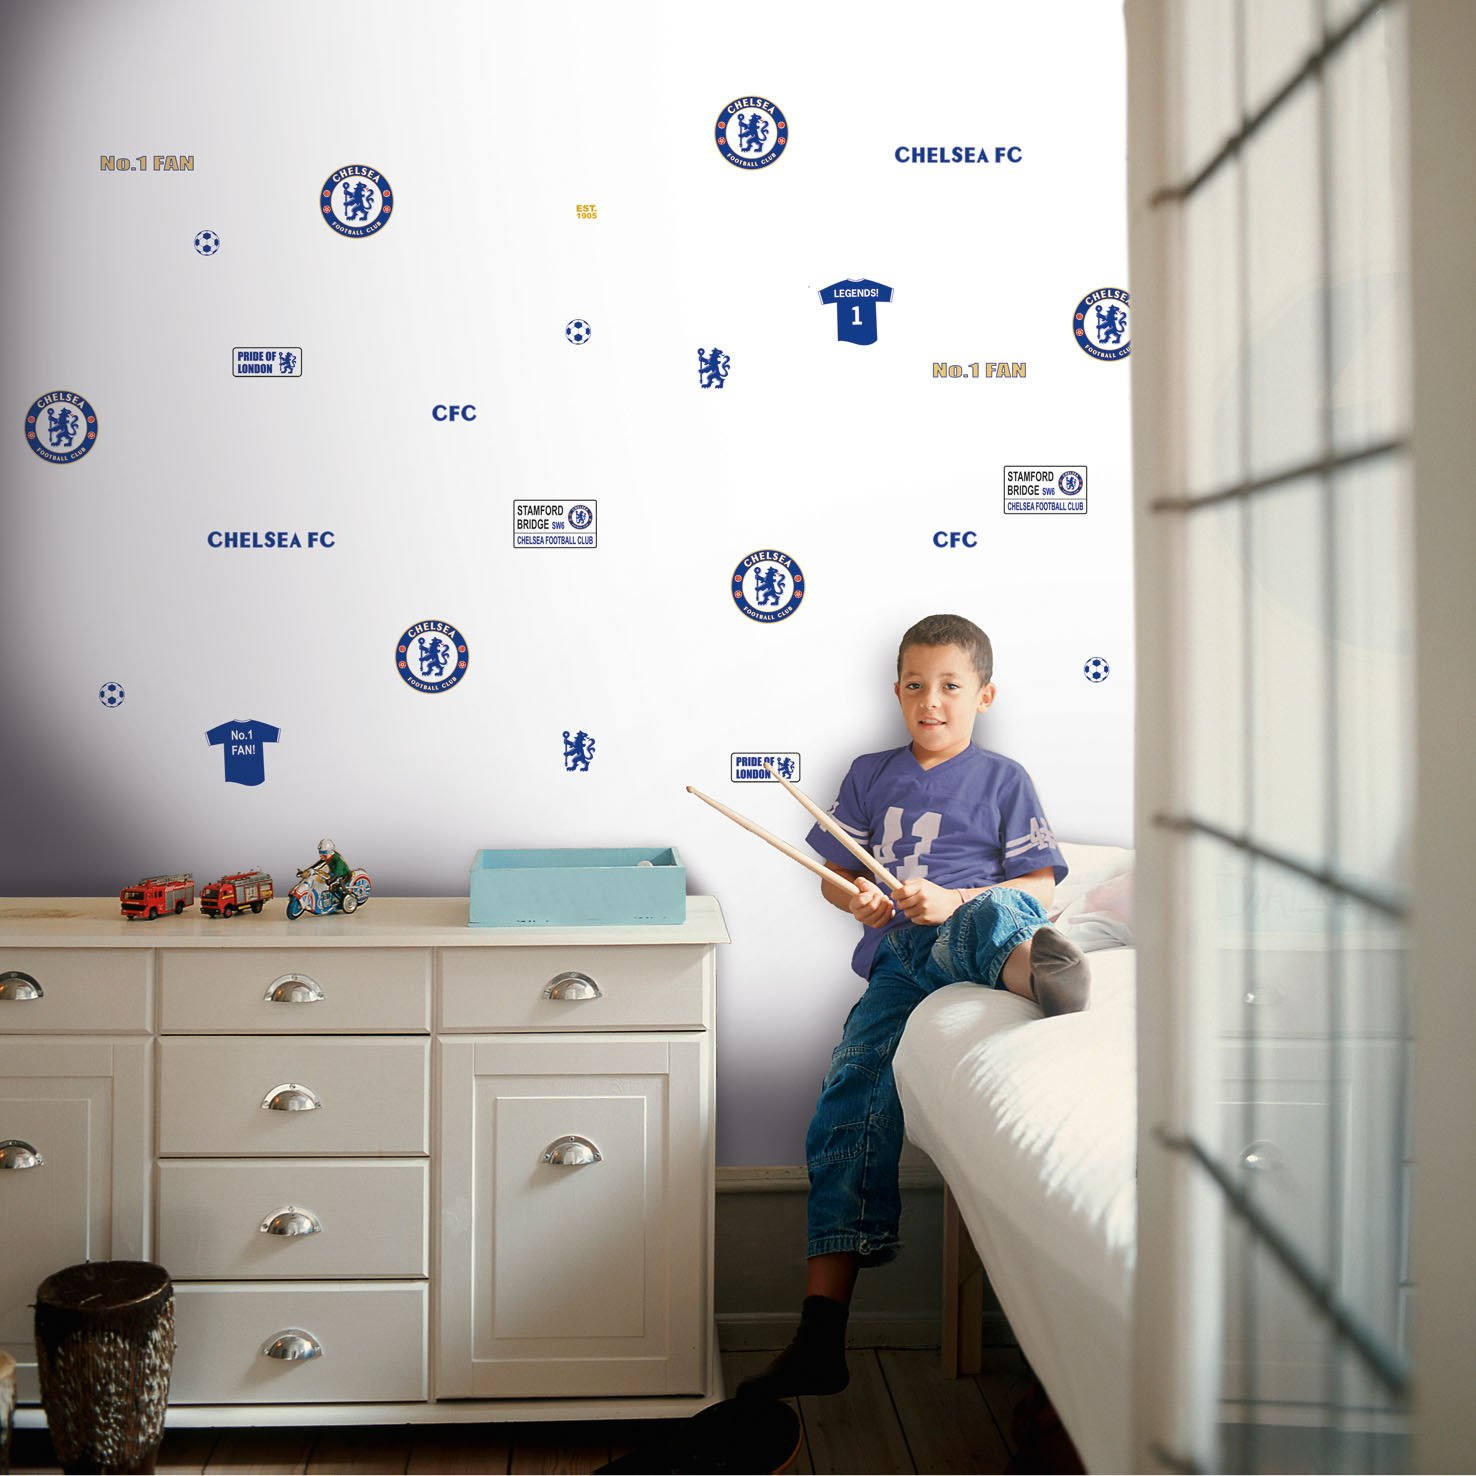 Chelsea wall stickers choice image home wall decoration ideas chelsea fc wall sticker blue amazon kitchen home amipublicfo choice image amipublicfo Gallery